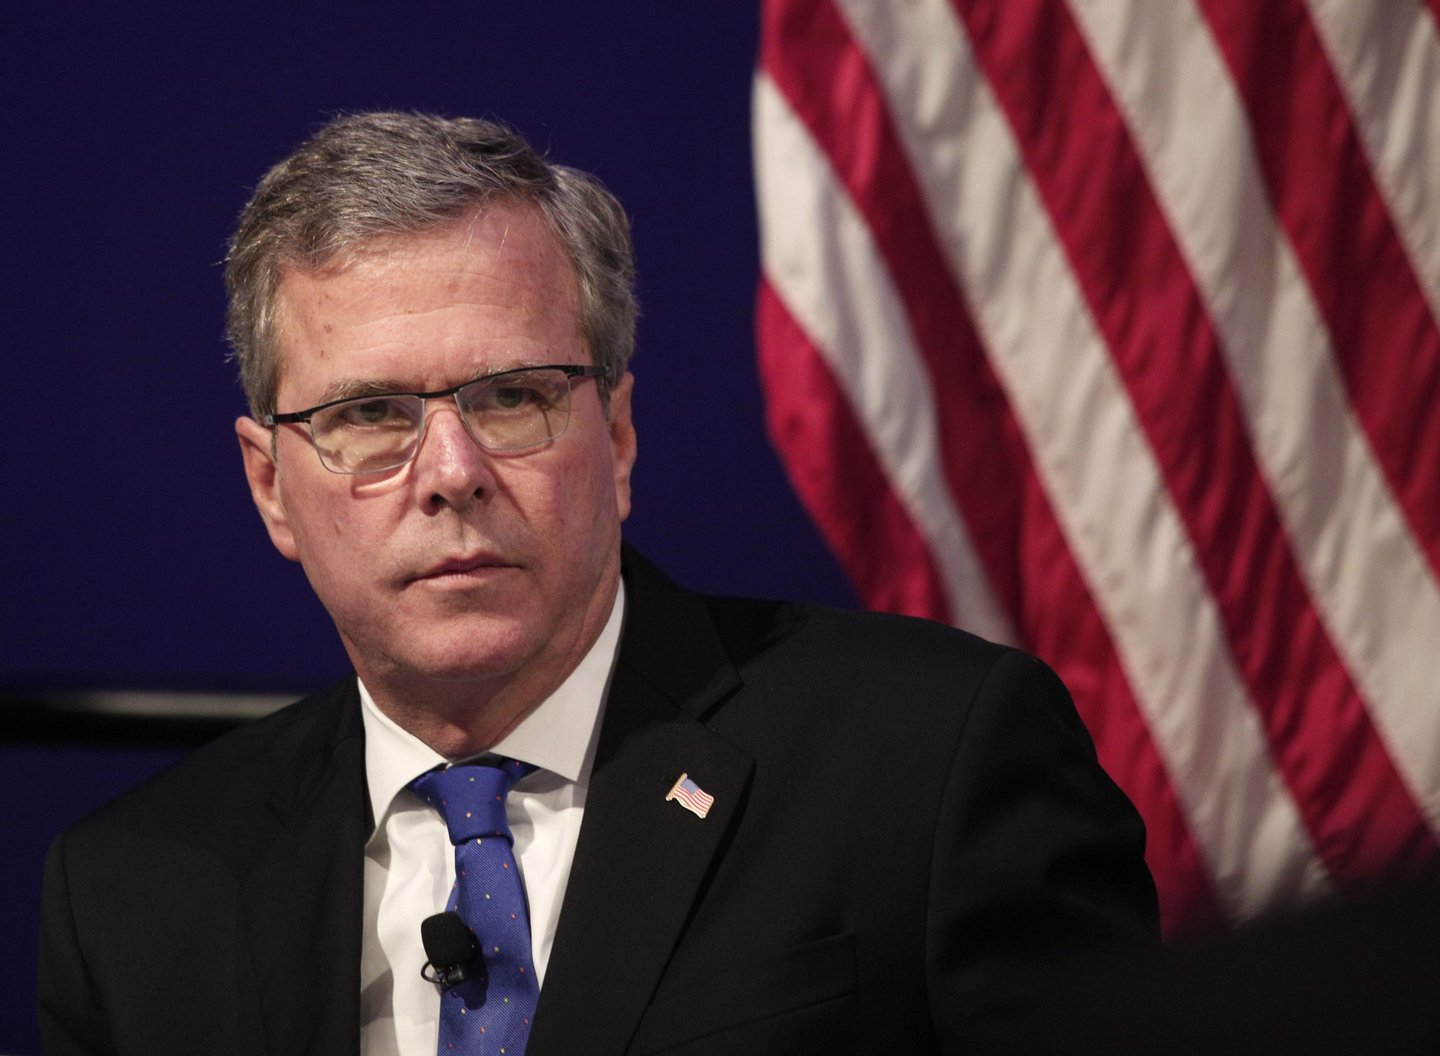 DETROIT, MI - FEBRUARY 4: Former Florida Governor Jeb Bush waits to speak at the Detroit Economic Club February 4, 2015 in Detroit, Michigan. Bush, the son of former republican President George H.W. Bush and the brother of former republican President George W. Bush, is considering becoming a republican candidate for the 2016 presidential election. (Photo by Bill Pugliano/Getty Images)